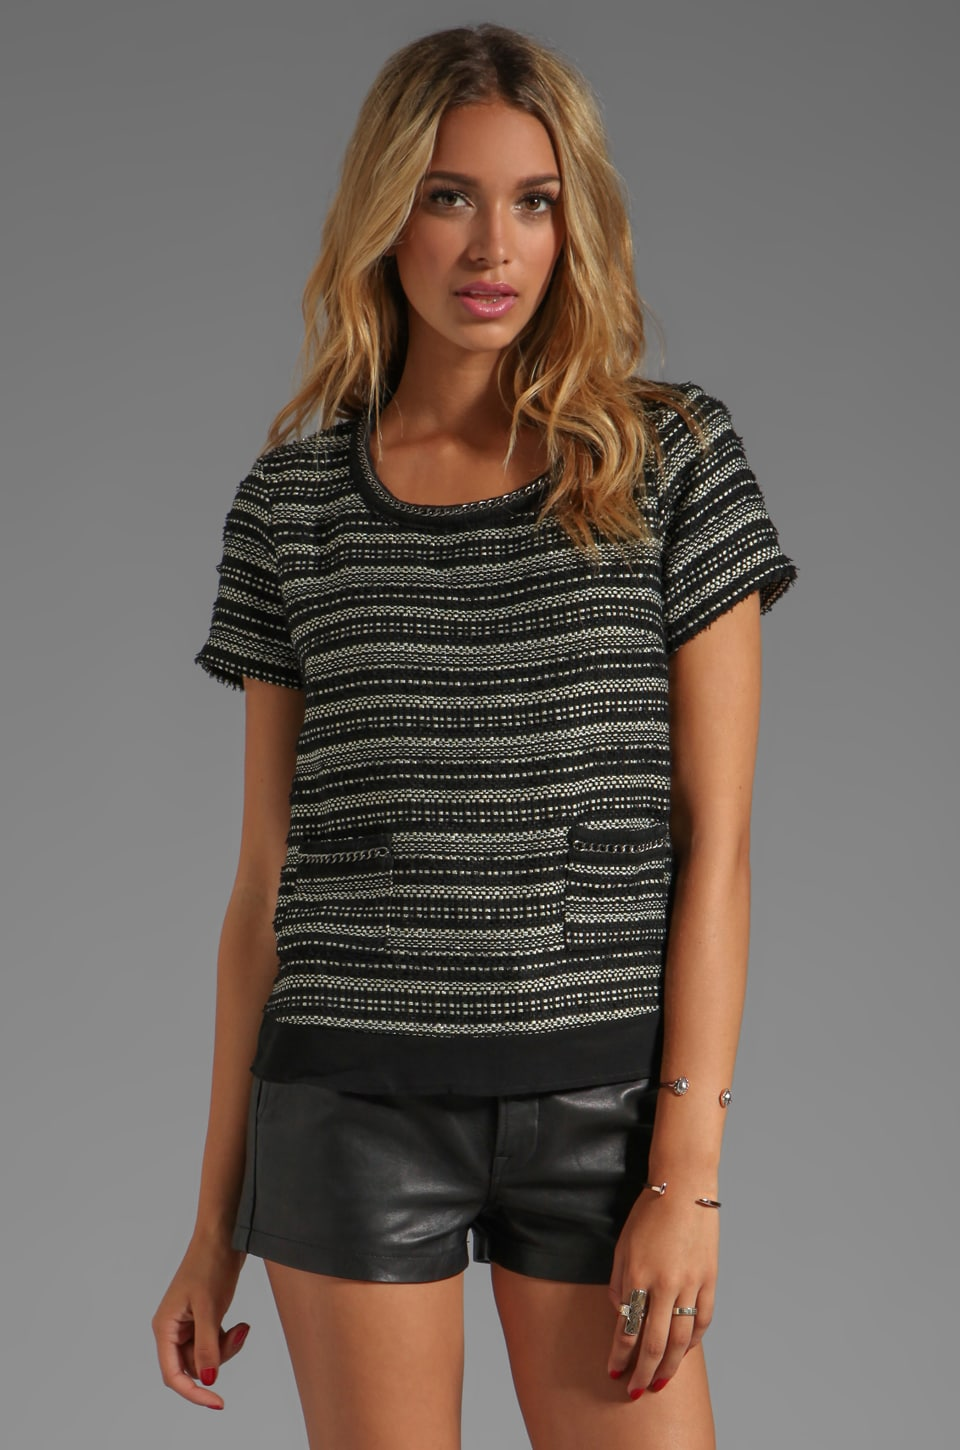 Wish Addict Top in Boucle